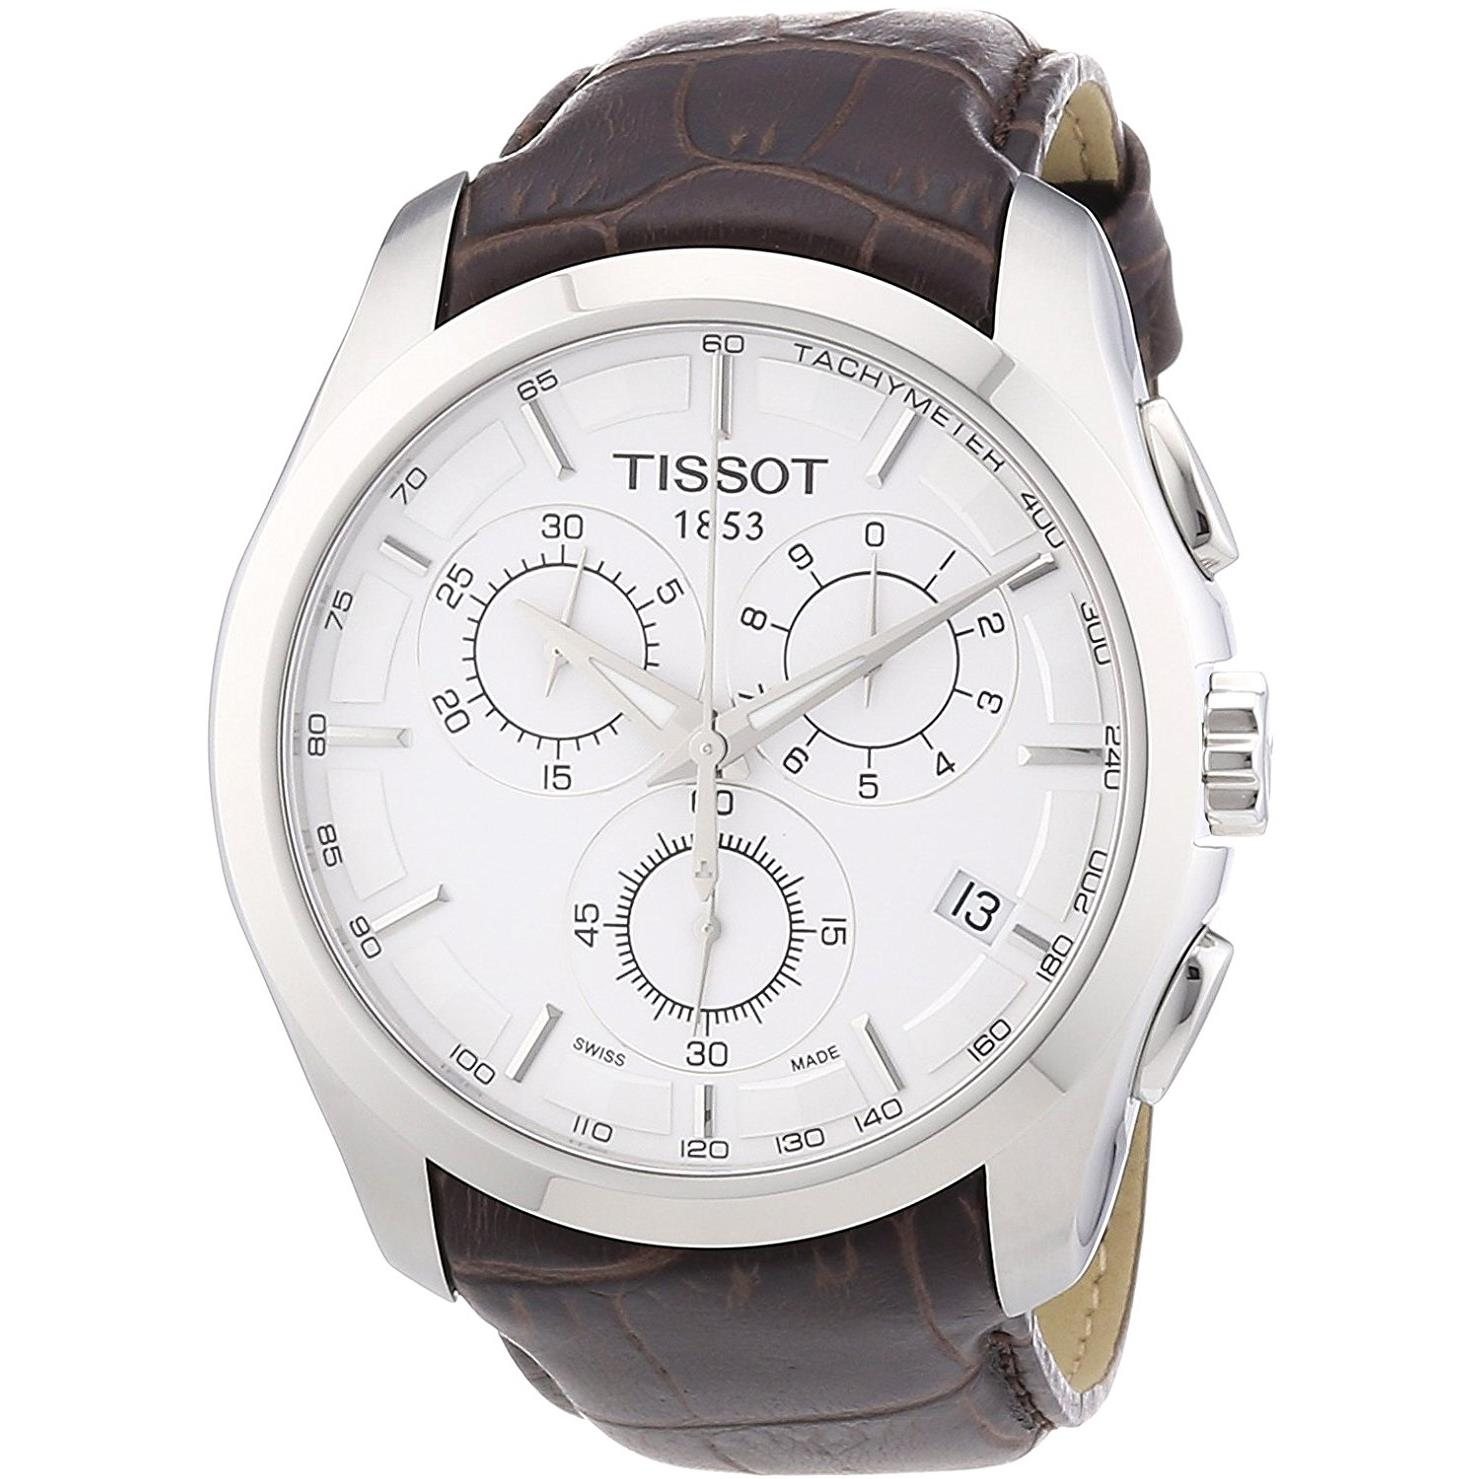 Tissot Men's 41mm Brown Leather Band Steel Case Swiss Qua...